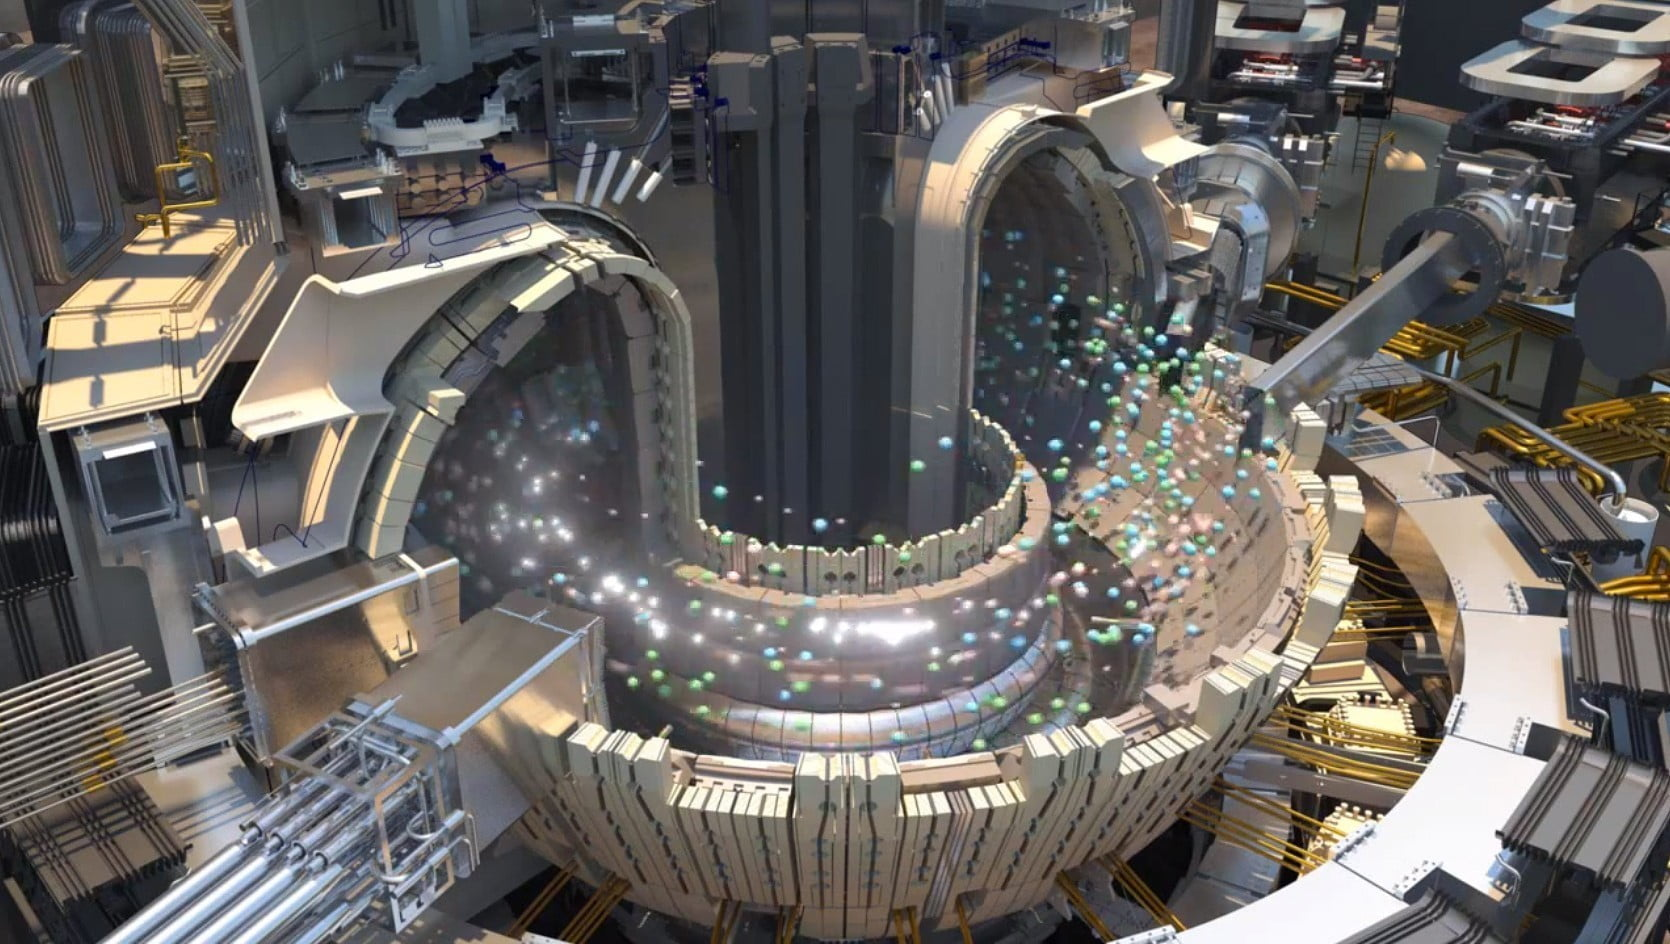 The Worlds First Nuclear Fusion Plant Is Now Halfway To Wendelstein Engineering Schematics Plasma Digital Trends